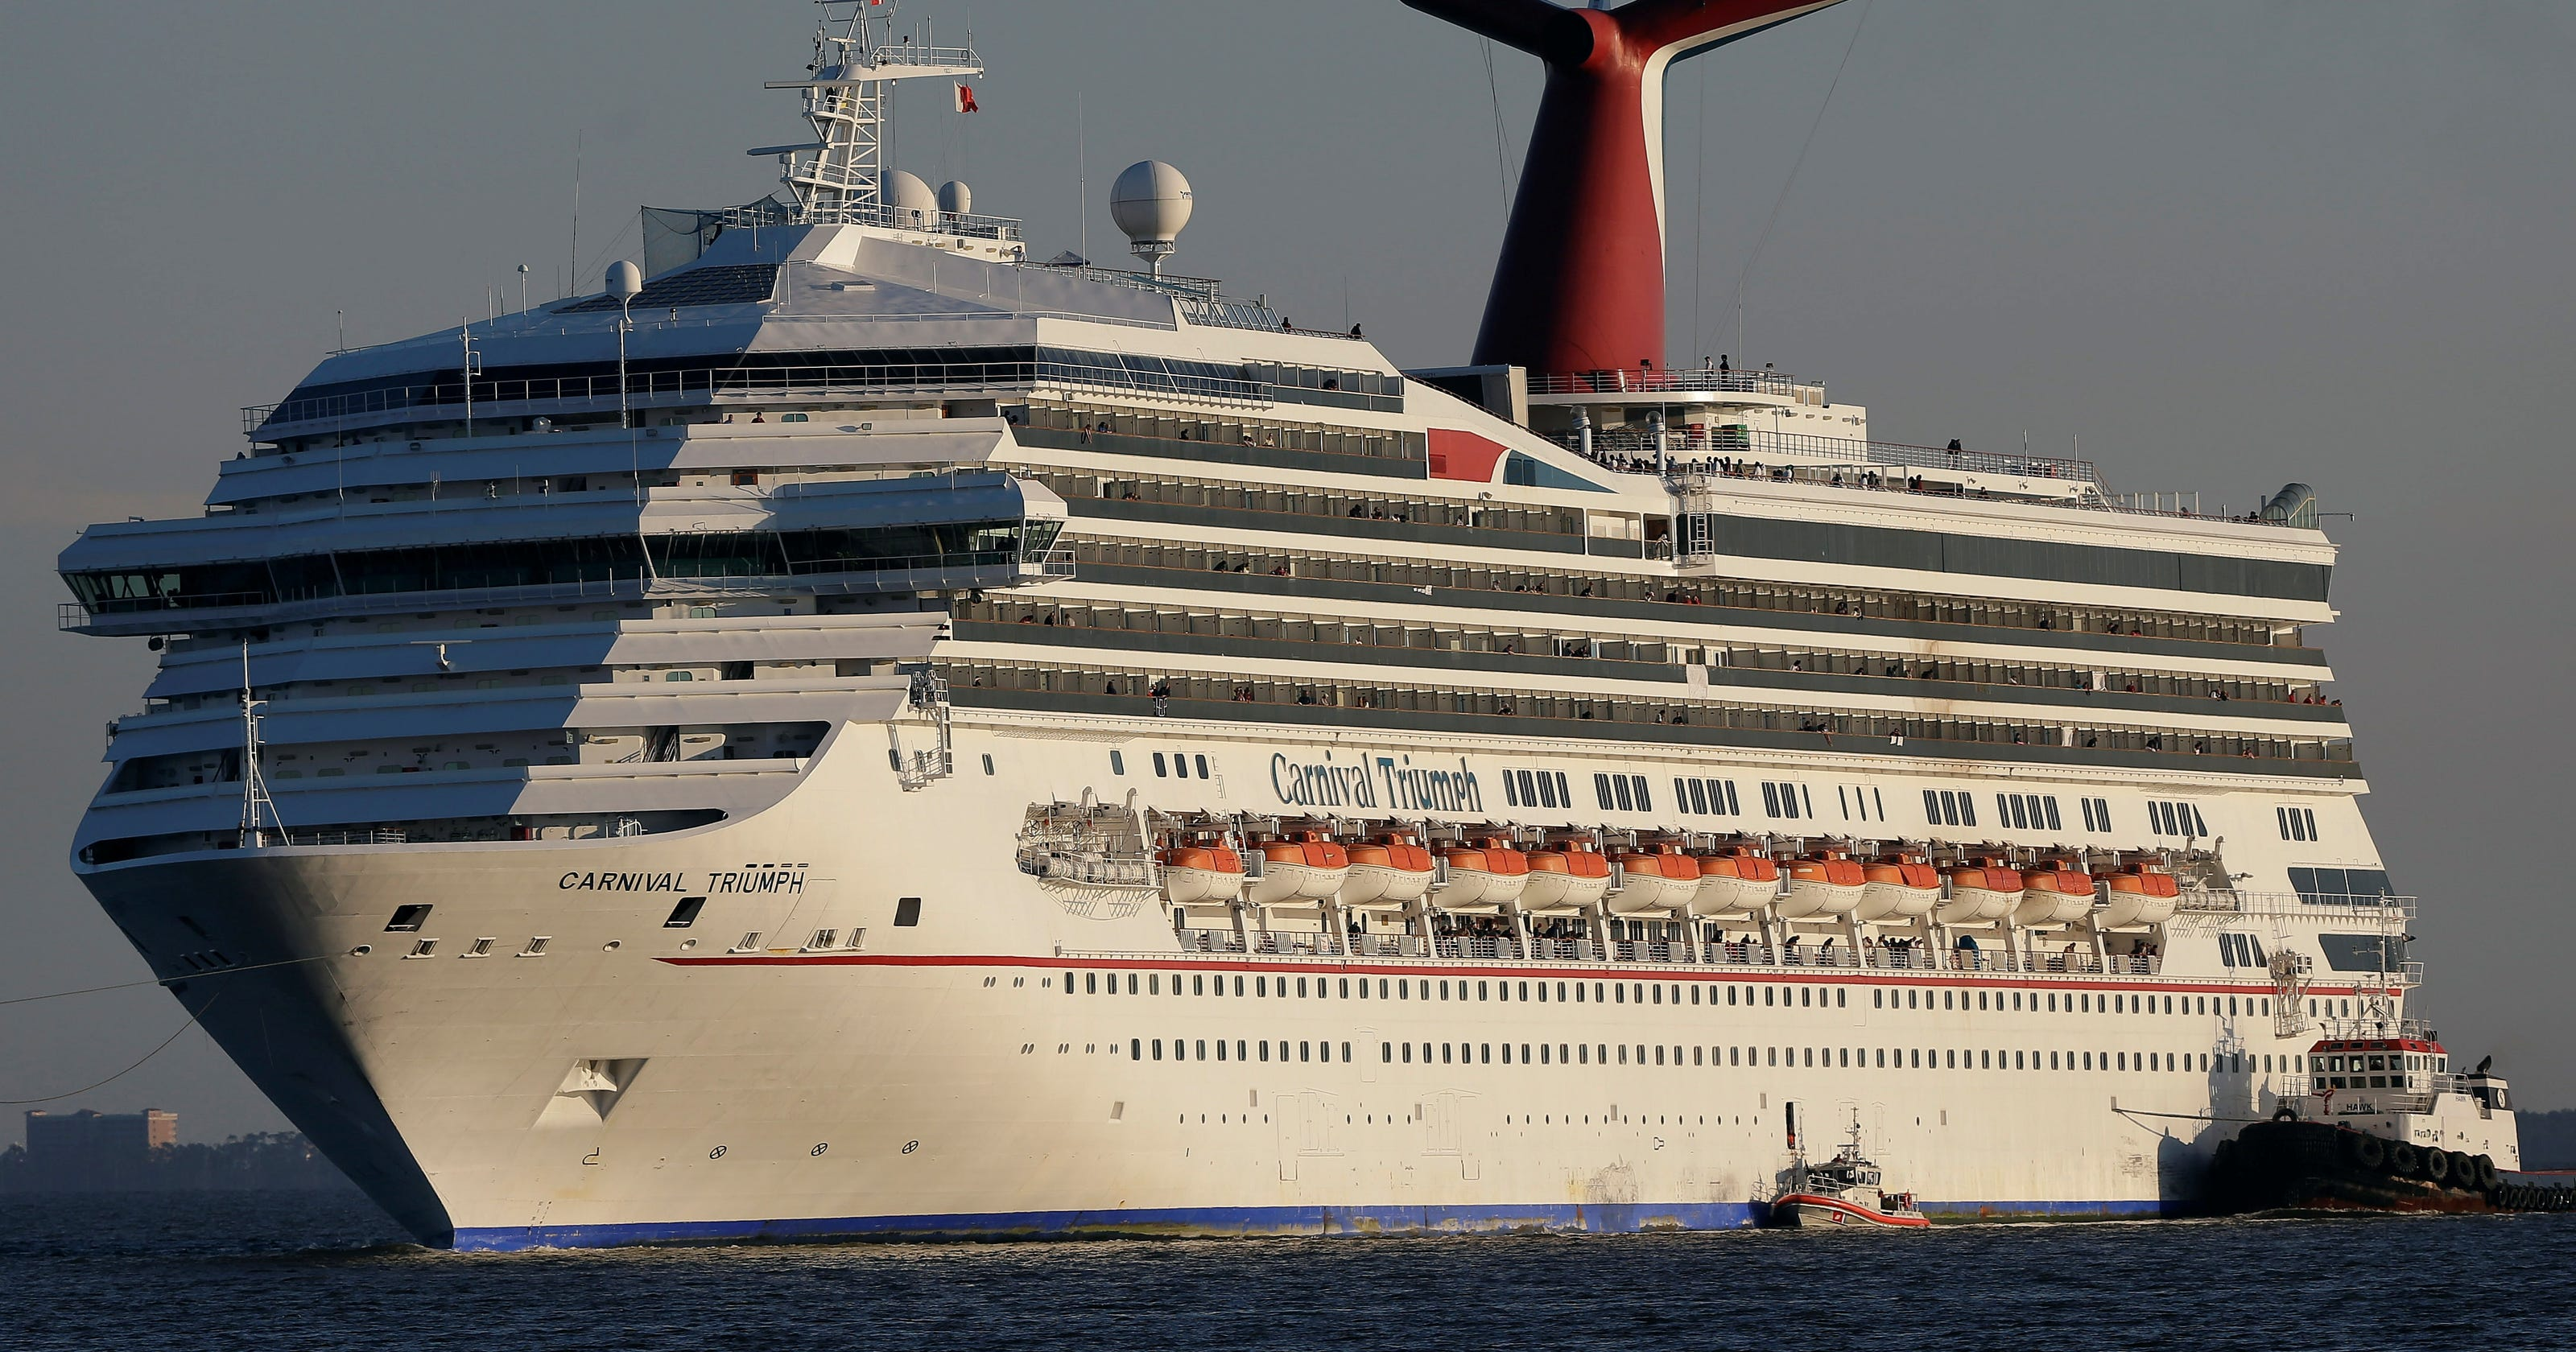 Carnival Triumph Returns To Service